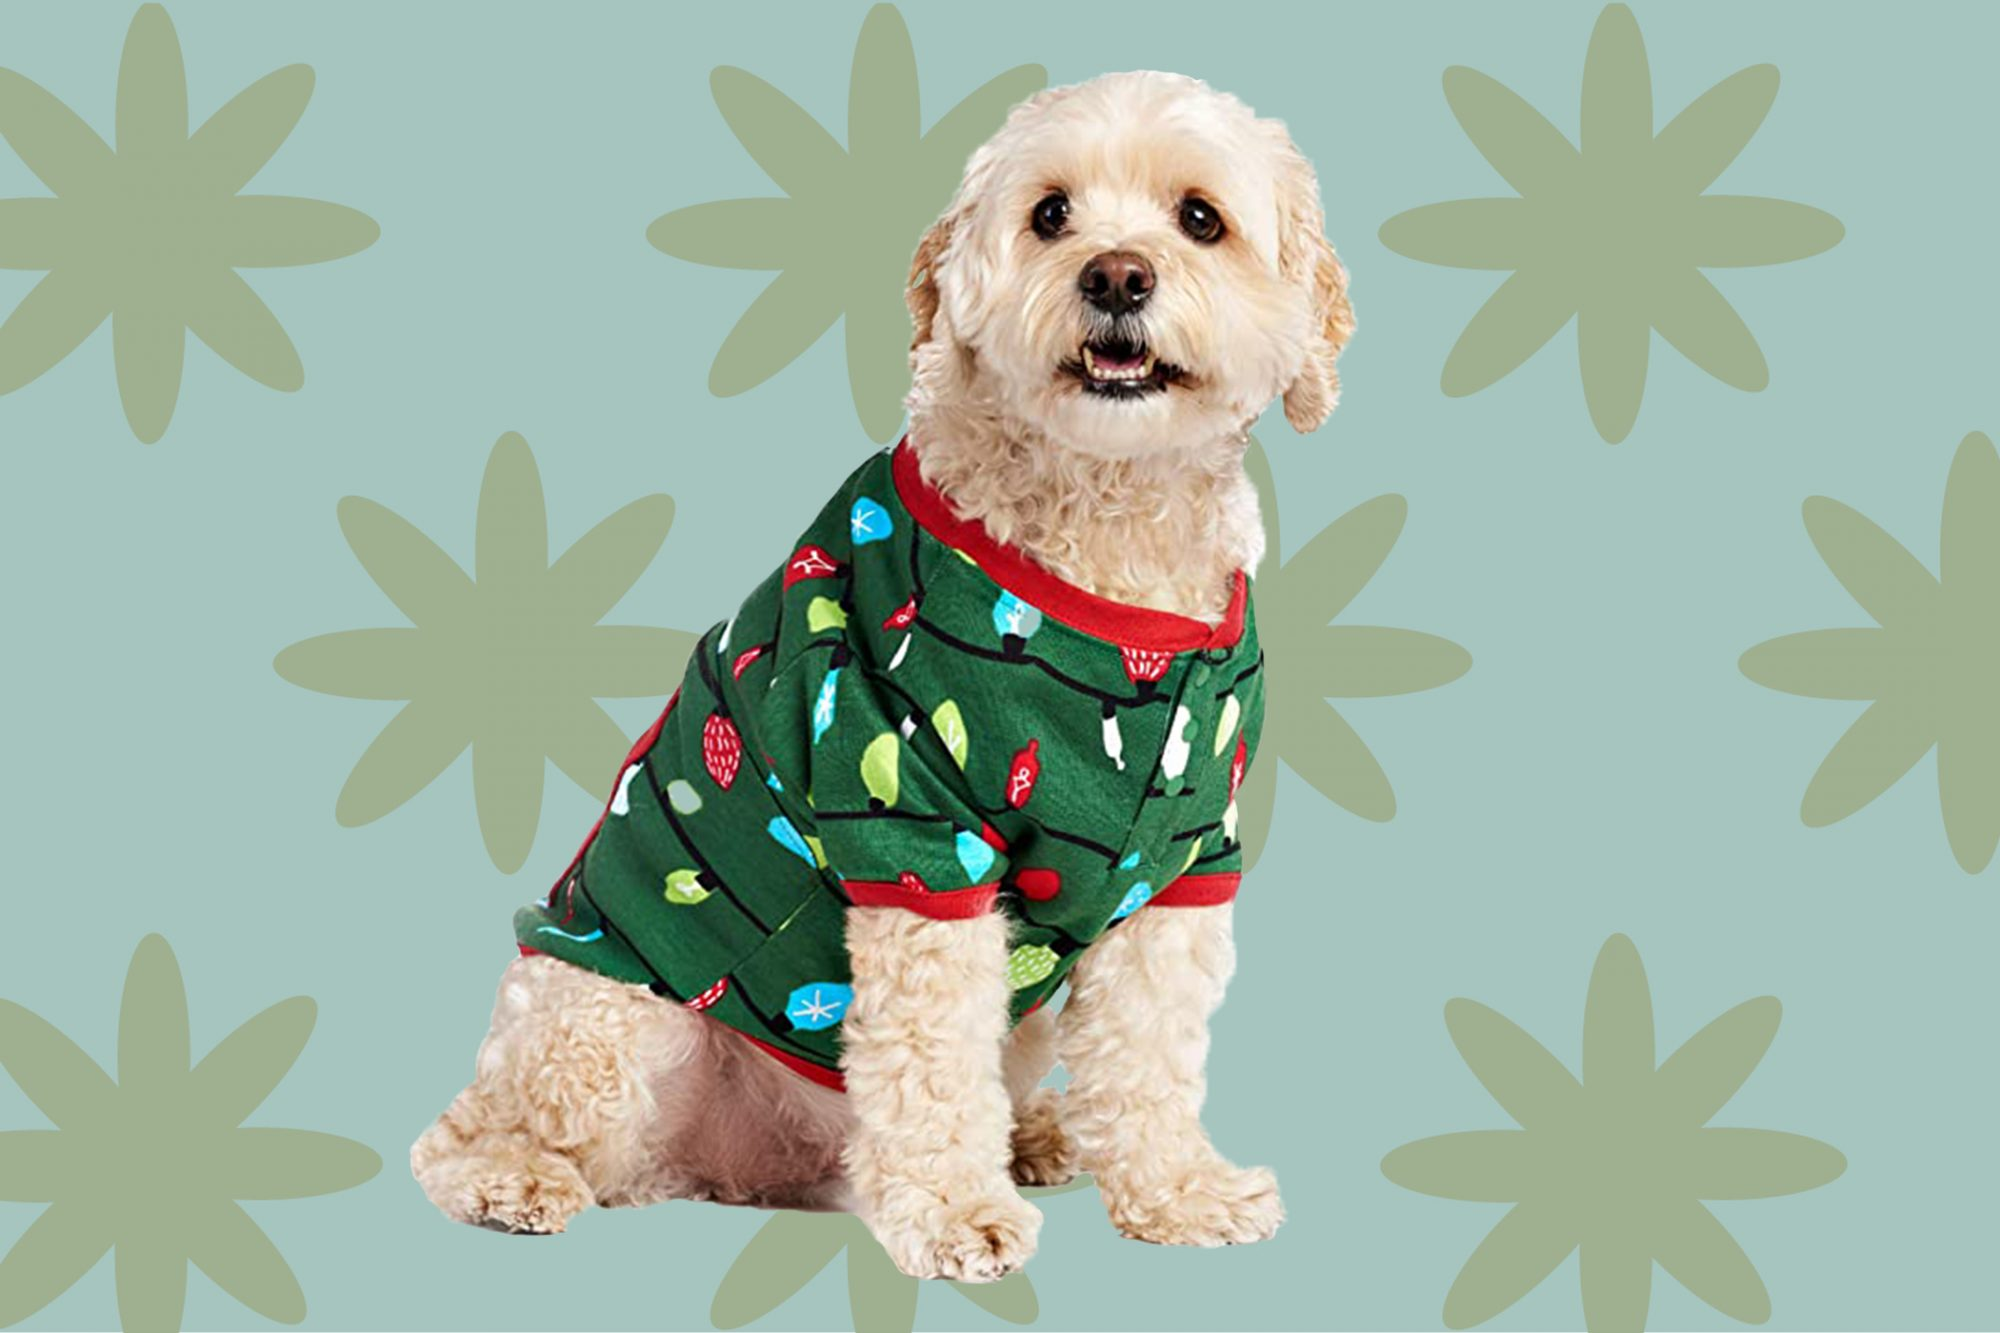 small curly-haired dog sits down in a green pajama top decorated with printed christmas lights